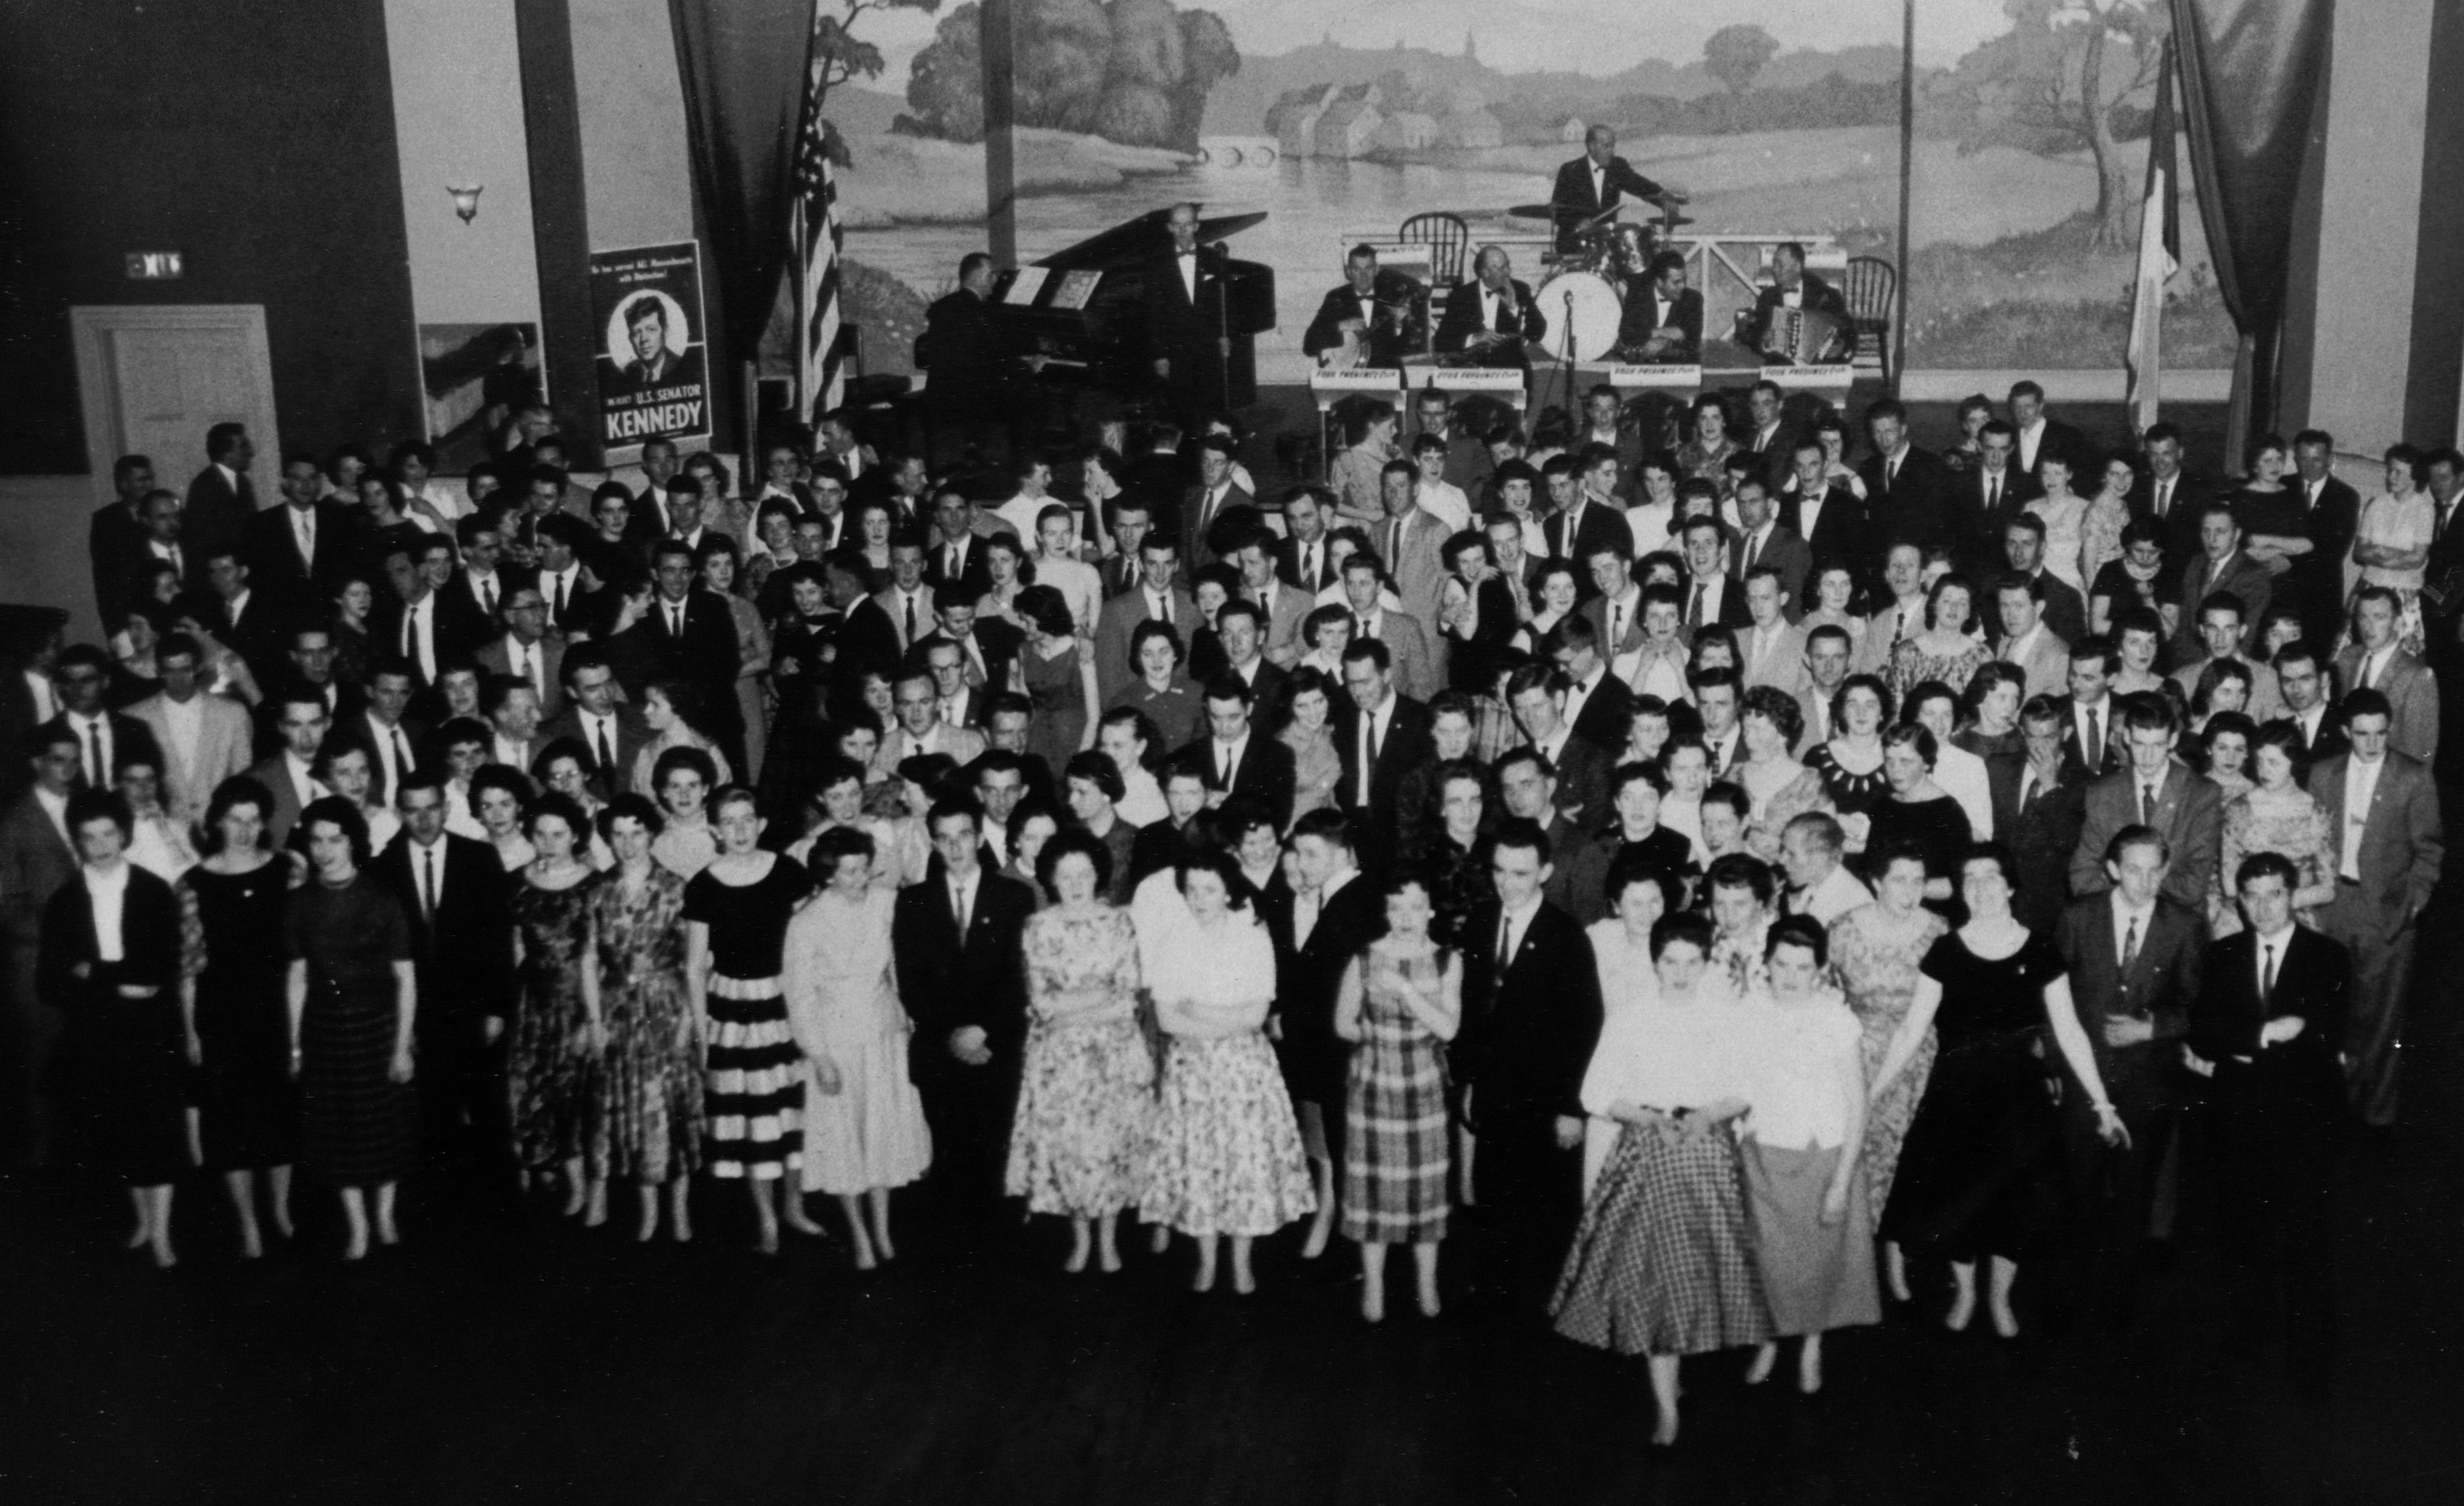 This 1957 dance at the Intercolonial Crystal Ballroom was a fundraiser for John F. Kennedy's senatorial race. The Four Provinces Orchestra is on stage.